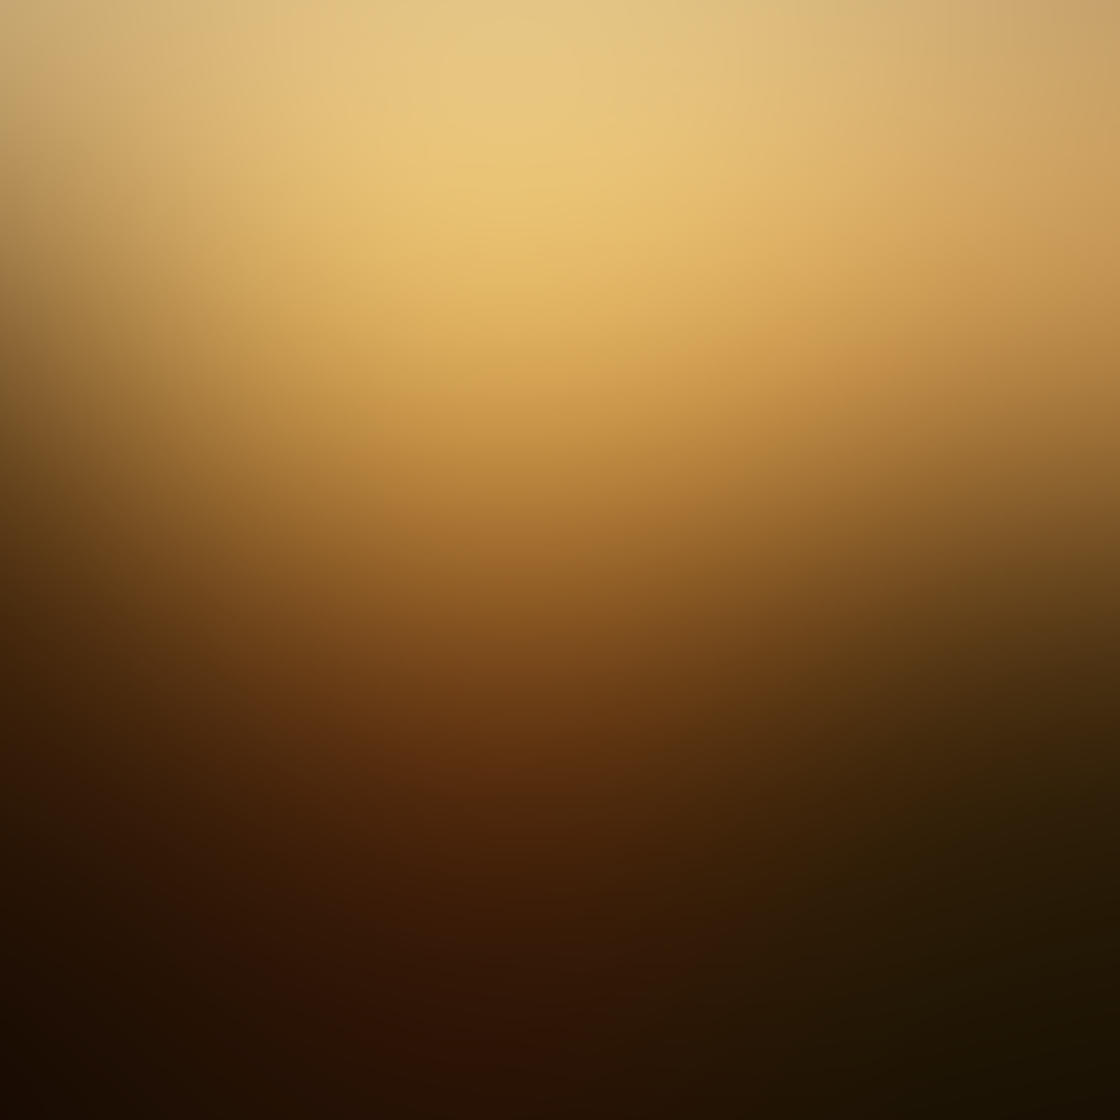 iphone-golden-hour-images24